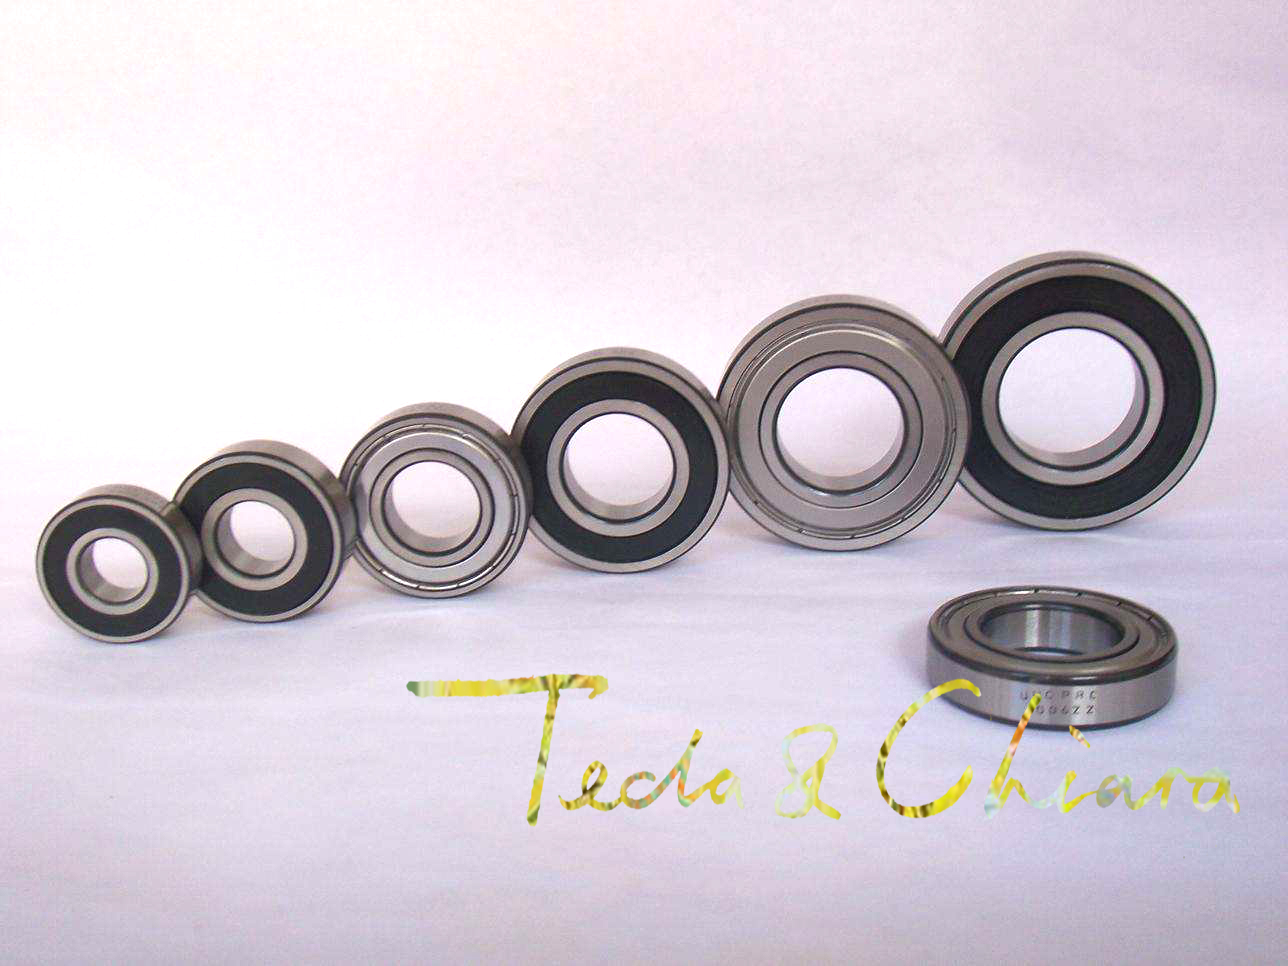 """Obliging 10pcs R4 R4zz R4rs R4-2z R4z R4-2rs Zz Rs Rz 2rz Deep Groove Ball Bearings 6.35 X 15.875 X 4.98mm 1/4"""" X 5/8"""" X 0.196"""" Activating Blood Circulation And Strengthening Sinews And Bones"""